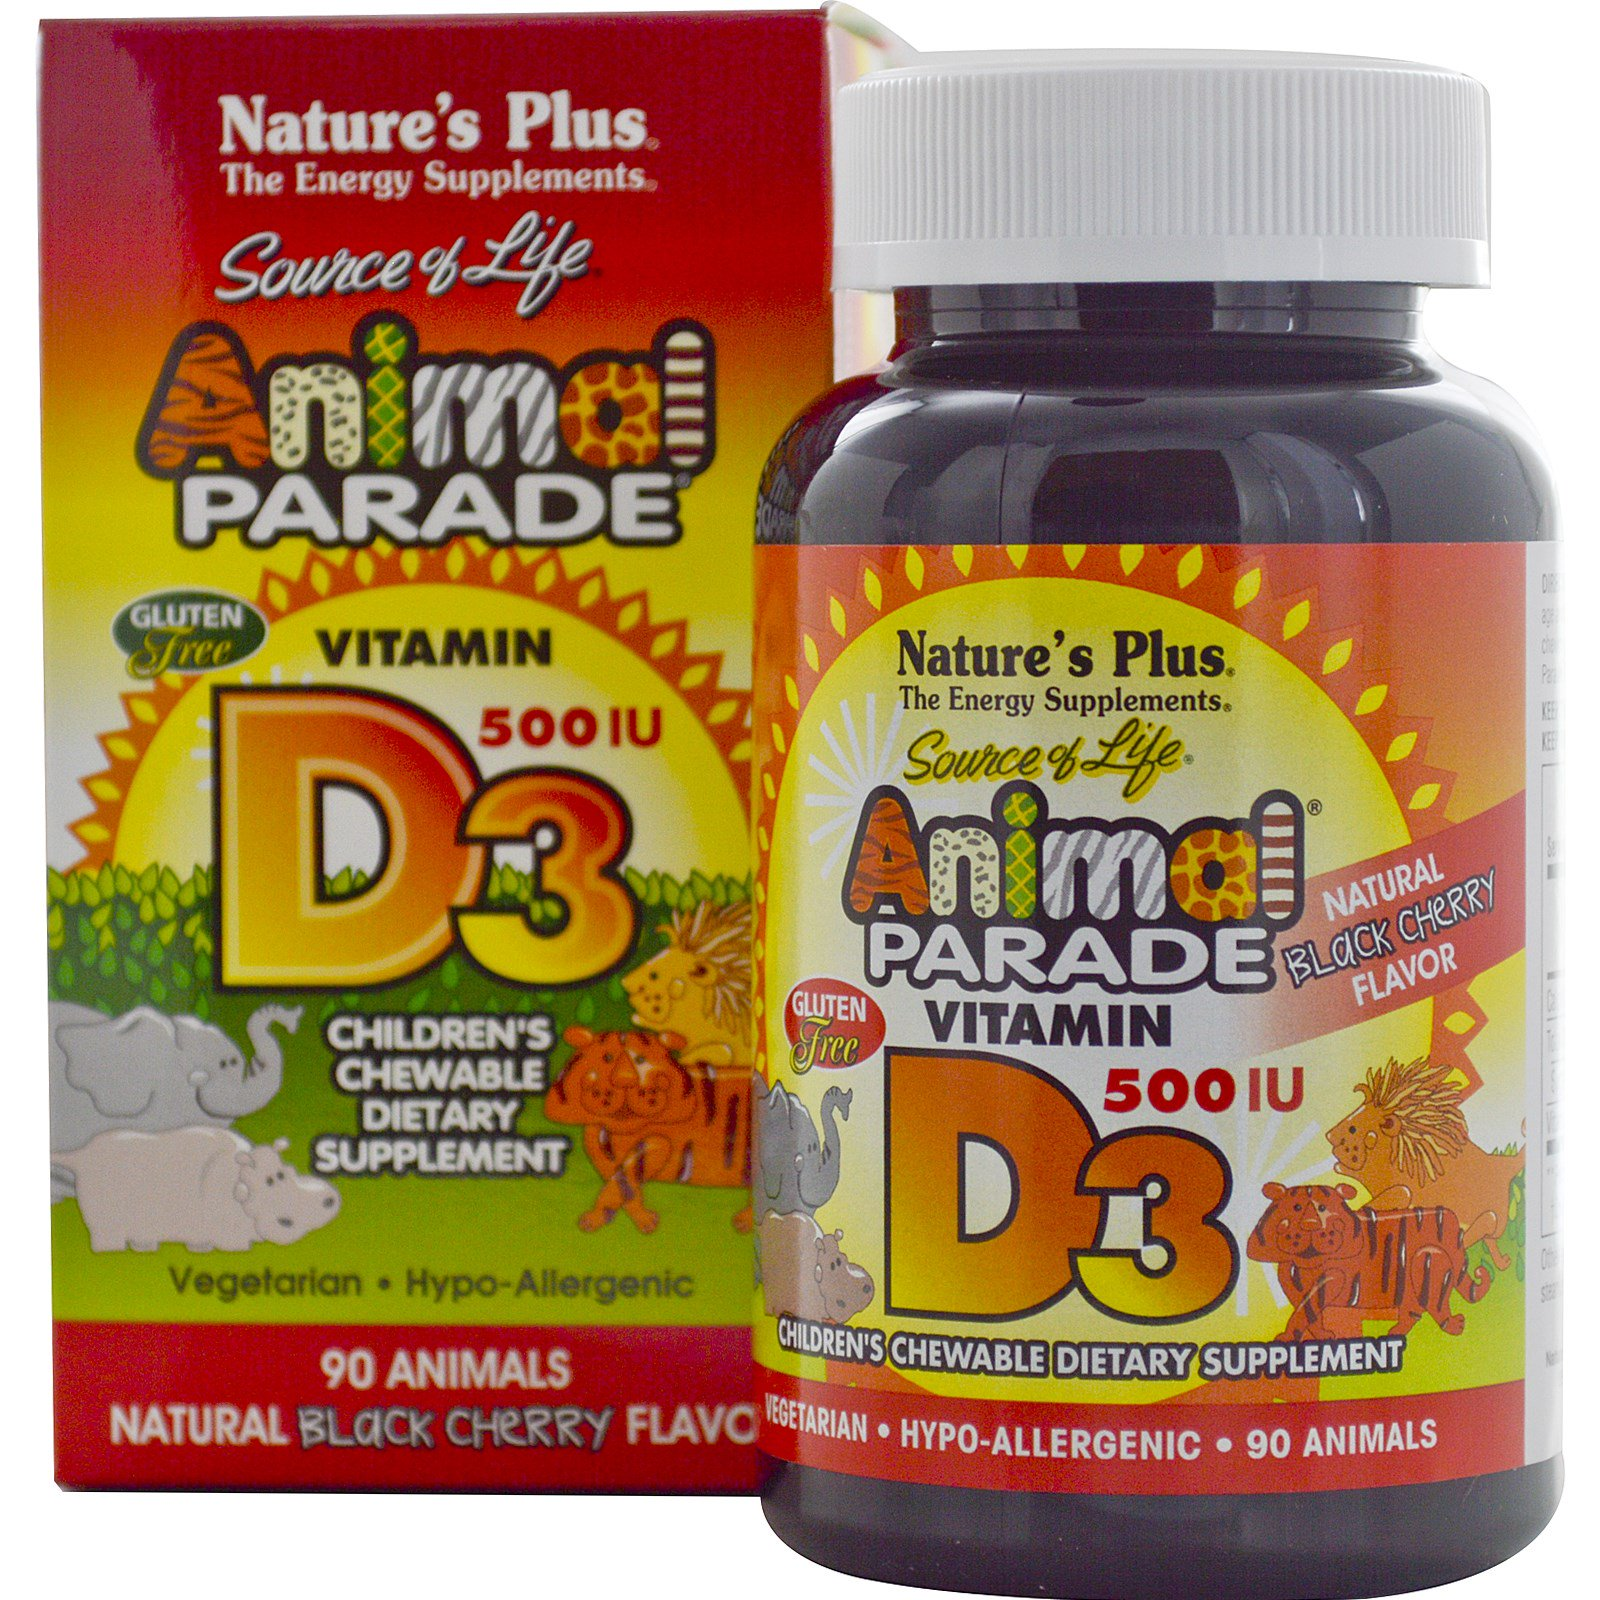 Vitamin D3, Natural Black Cherry Flavor, 500 IU (90 Animals) Nature apos s Plus